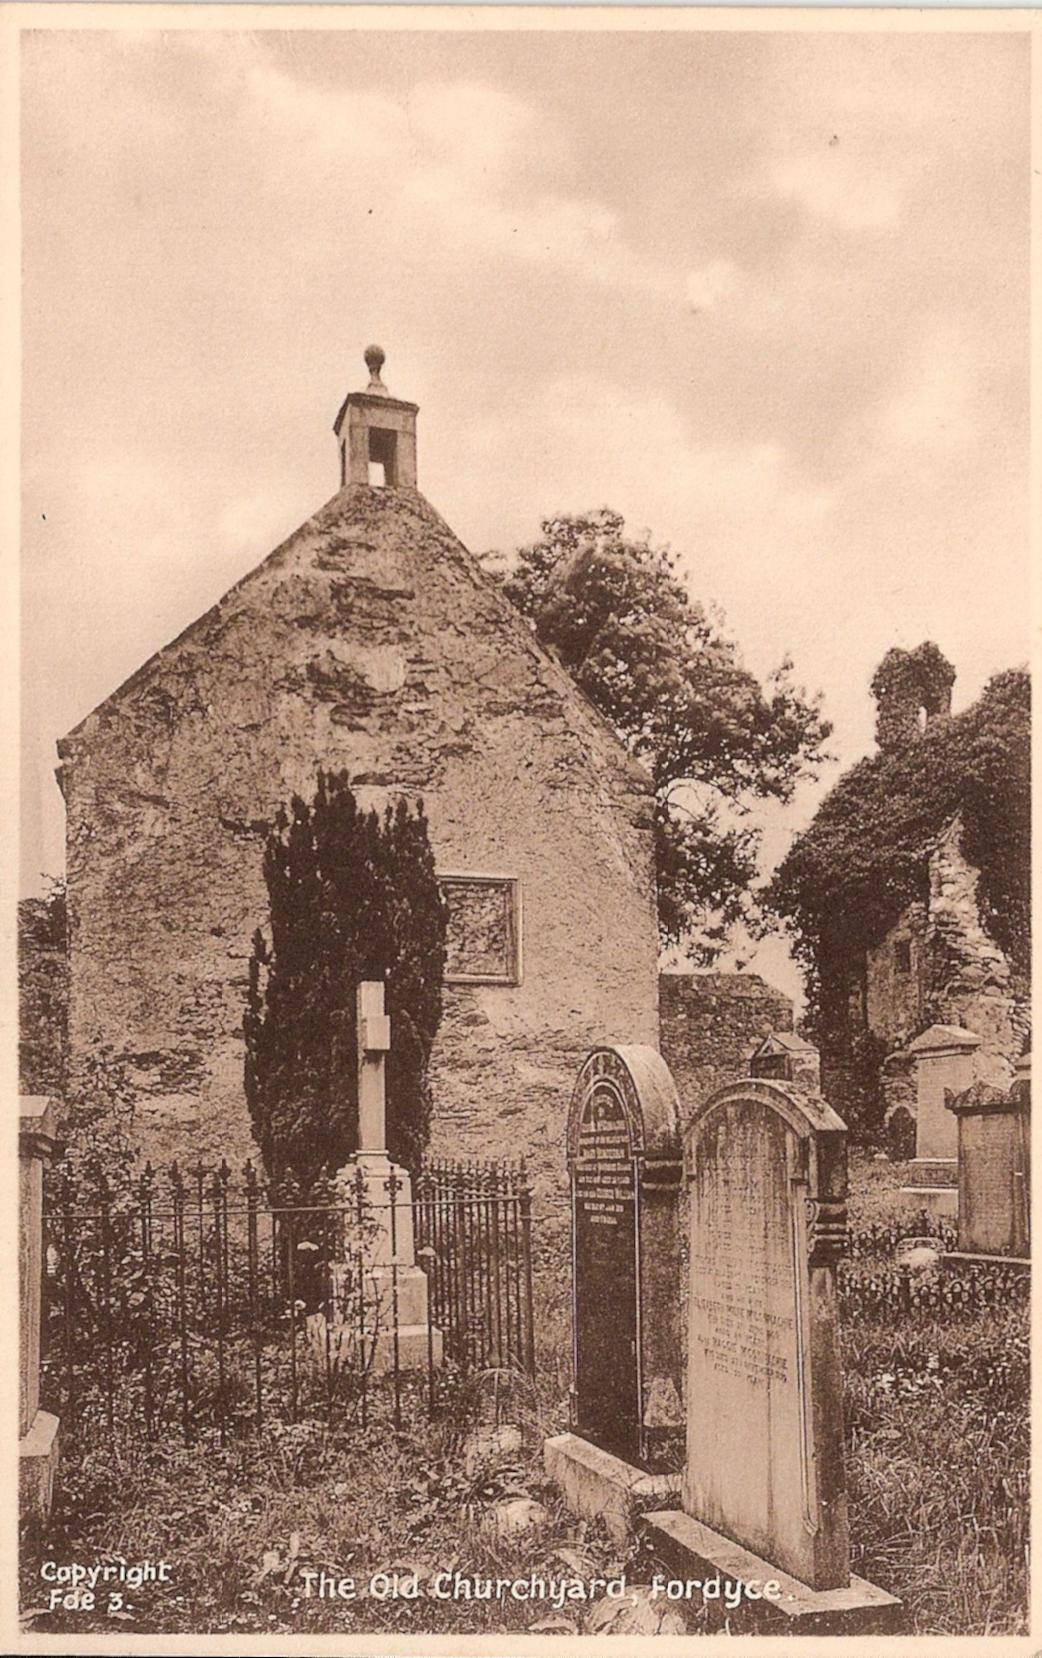 The Old Churchyard, Fordyce